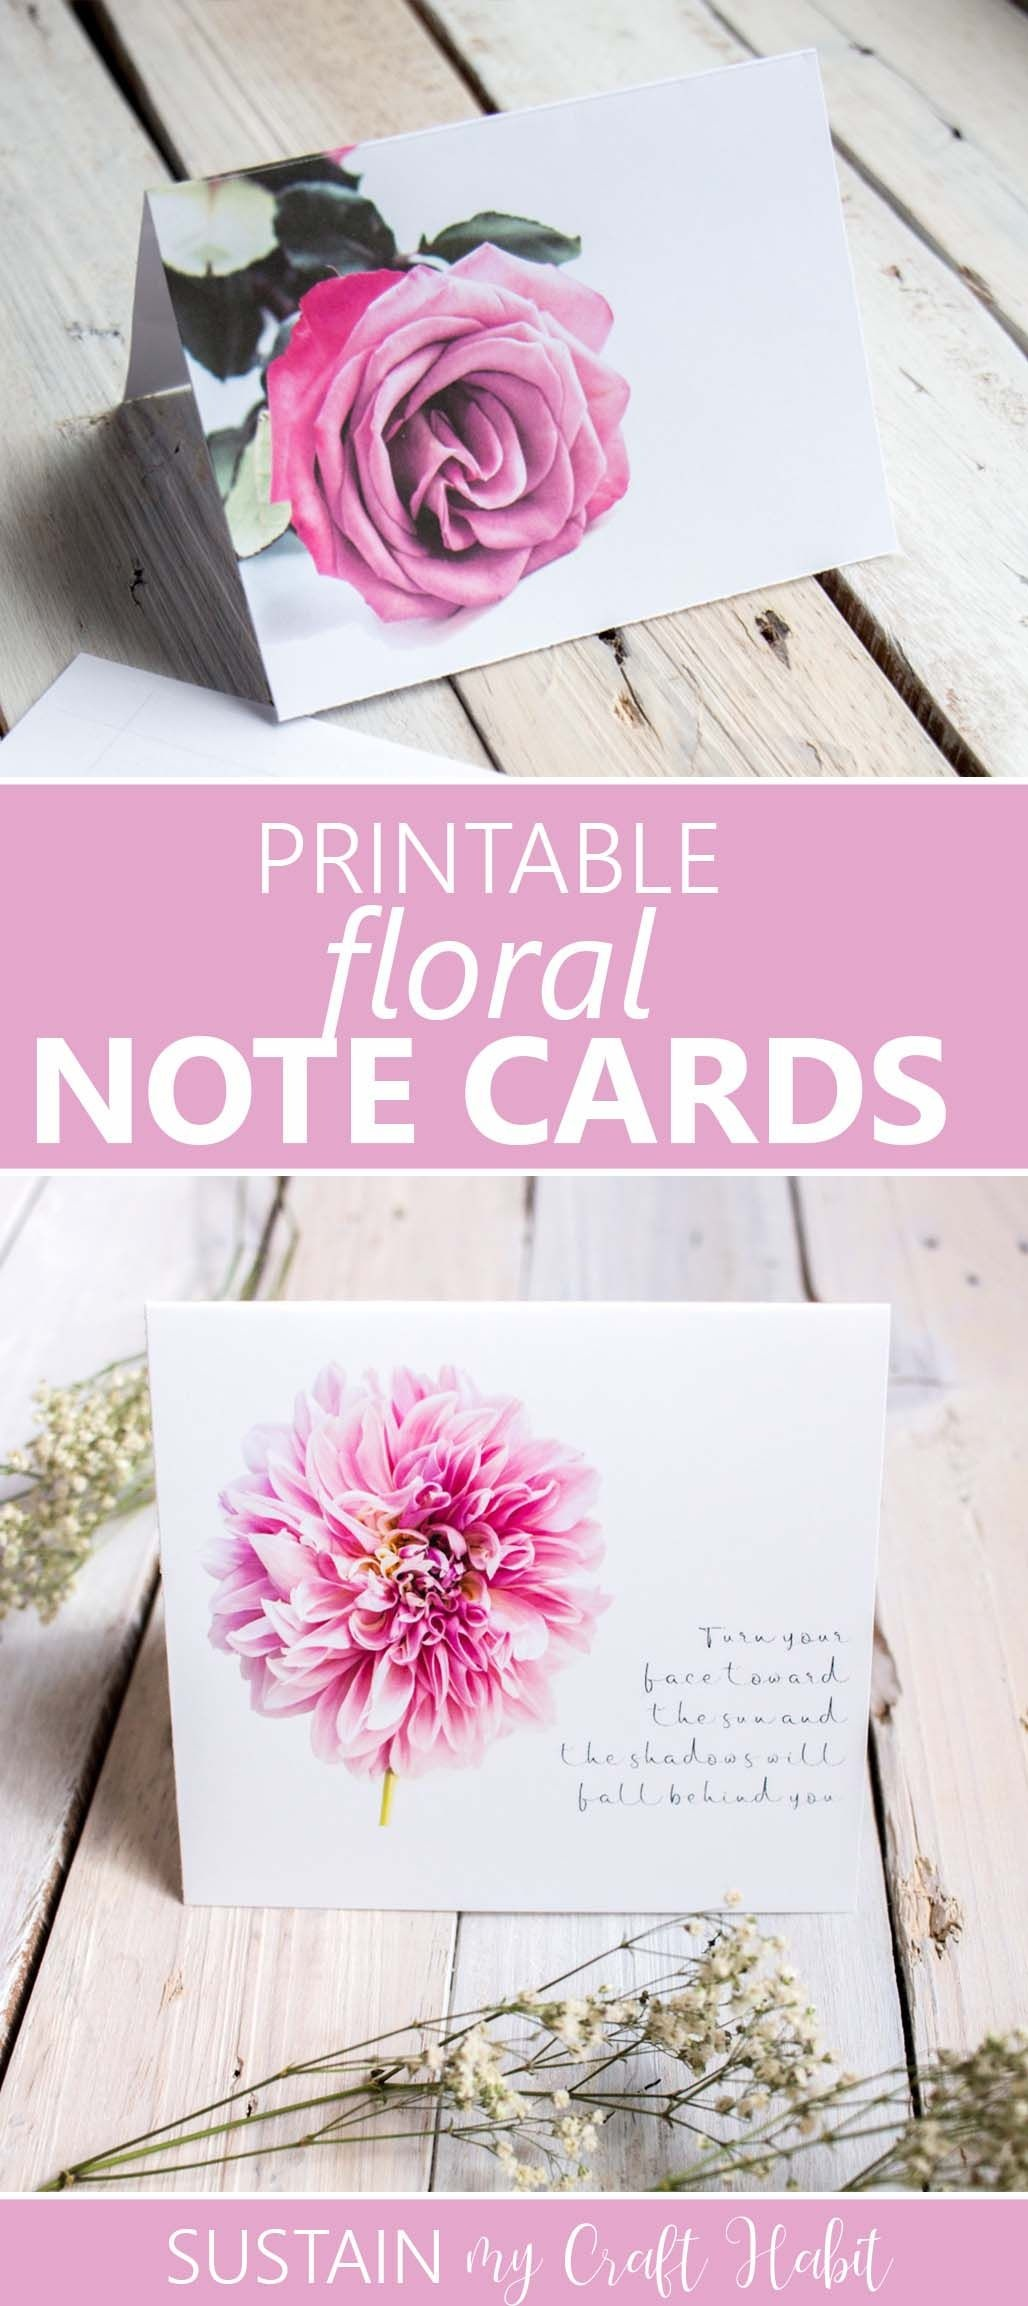 Printable Floral Note Cards | Free Printables  | Pinterest - Free Printable Special Occasion Cards